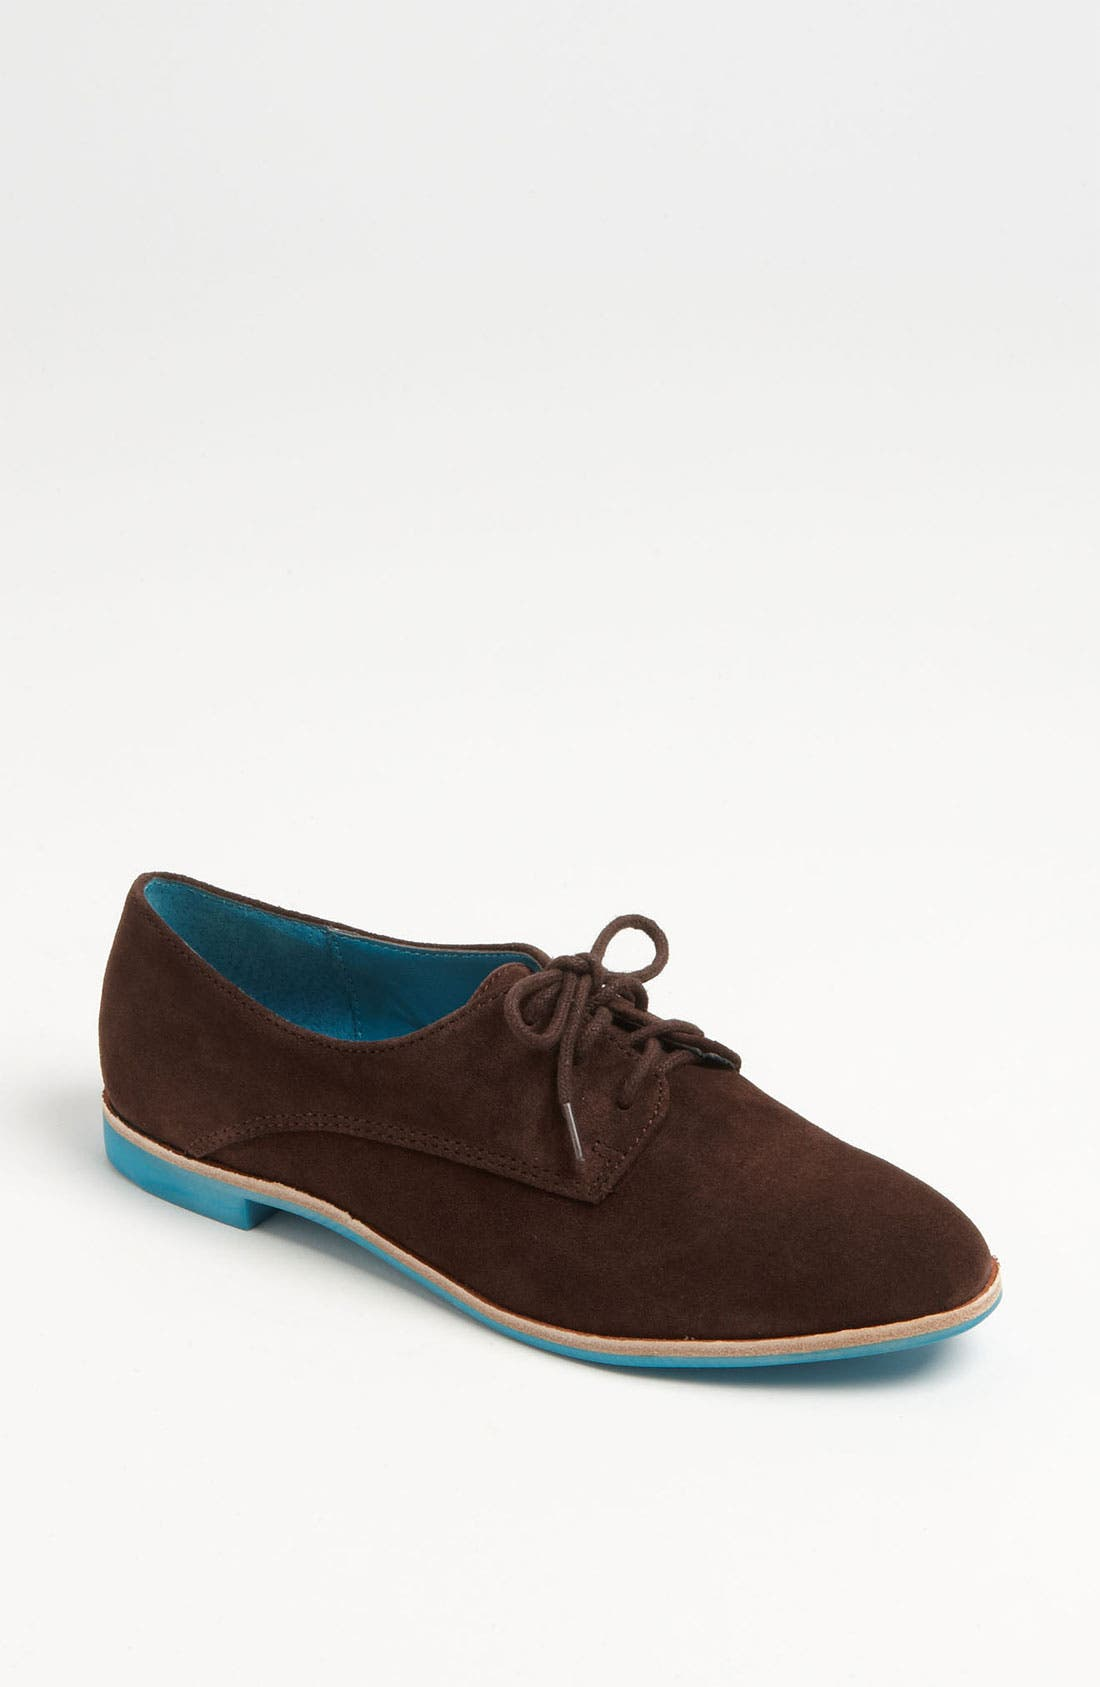 Alternate Image 1 Selected - DV by Dolce Vita 'Mini' Suede Lace-Up Oxford